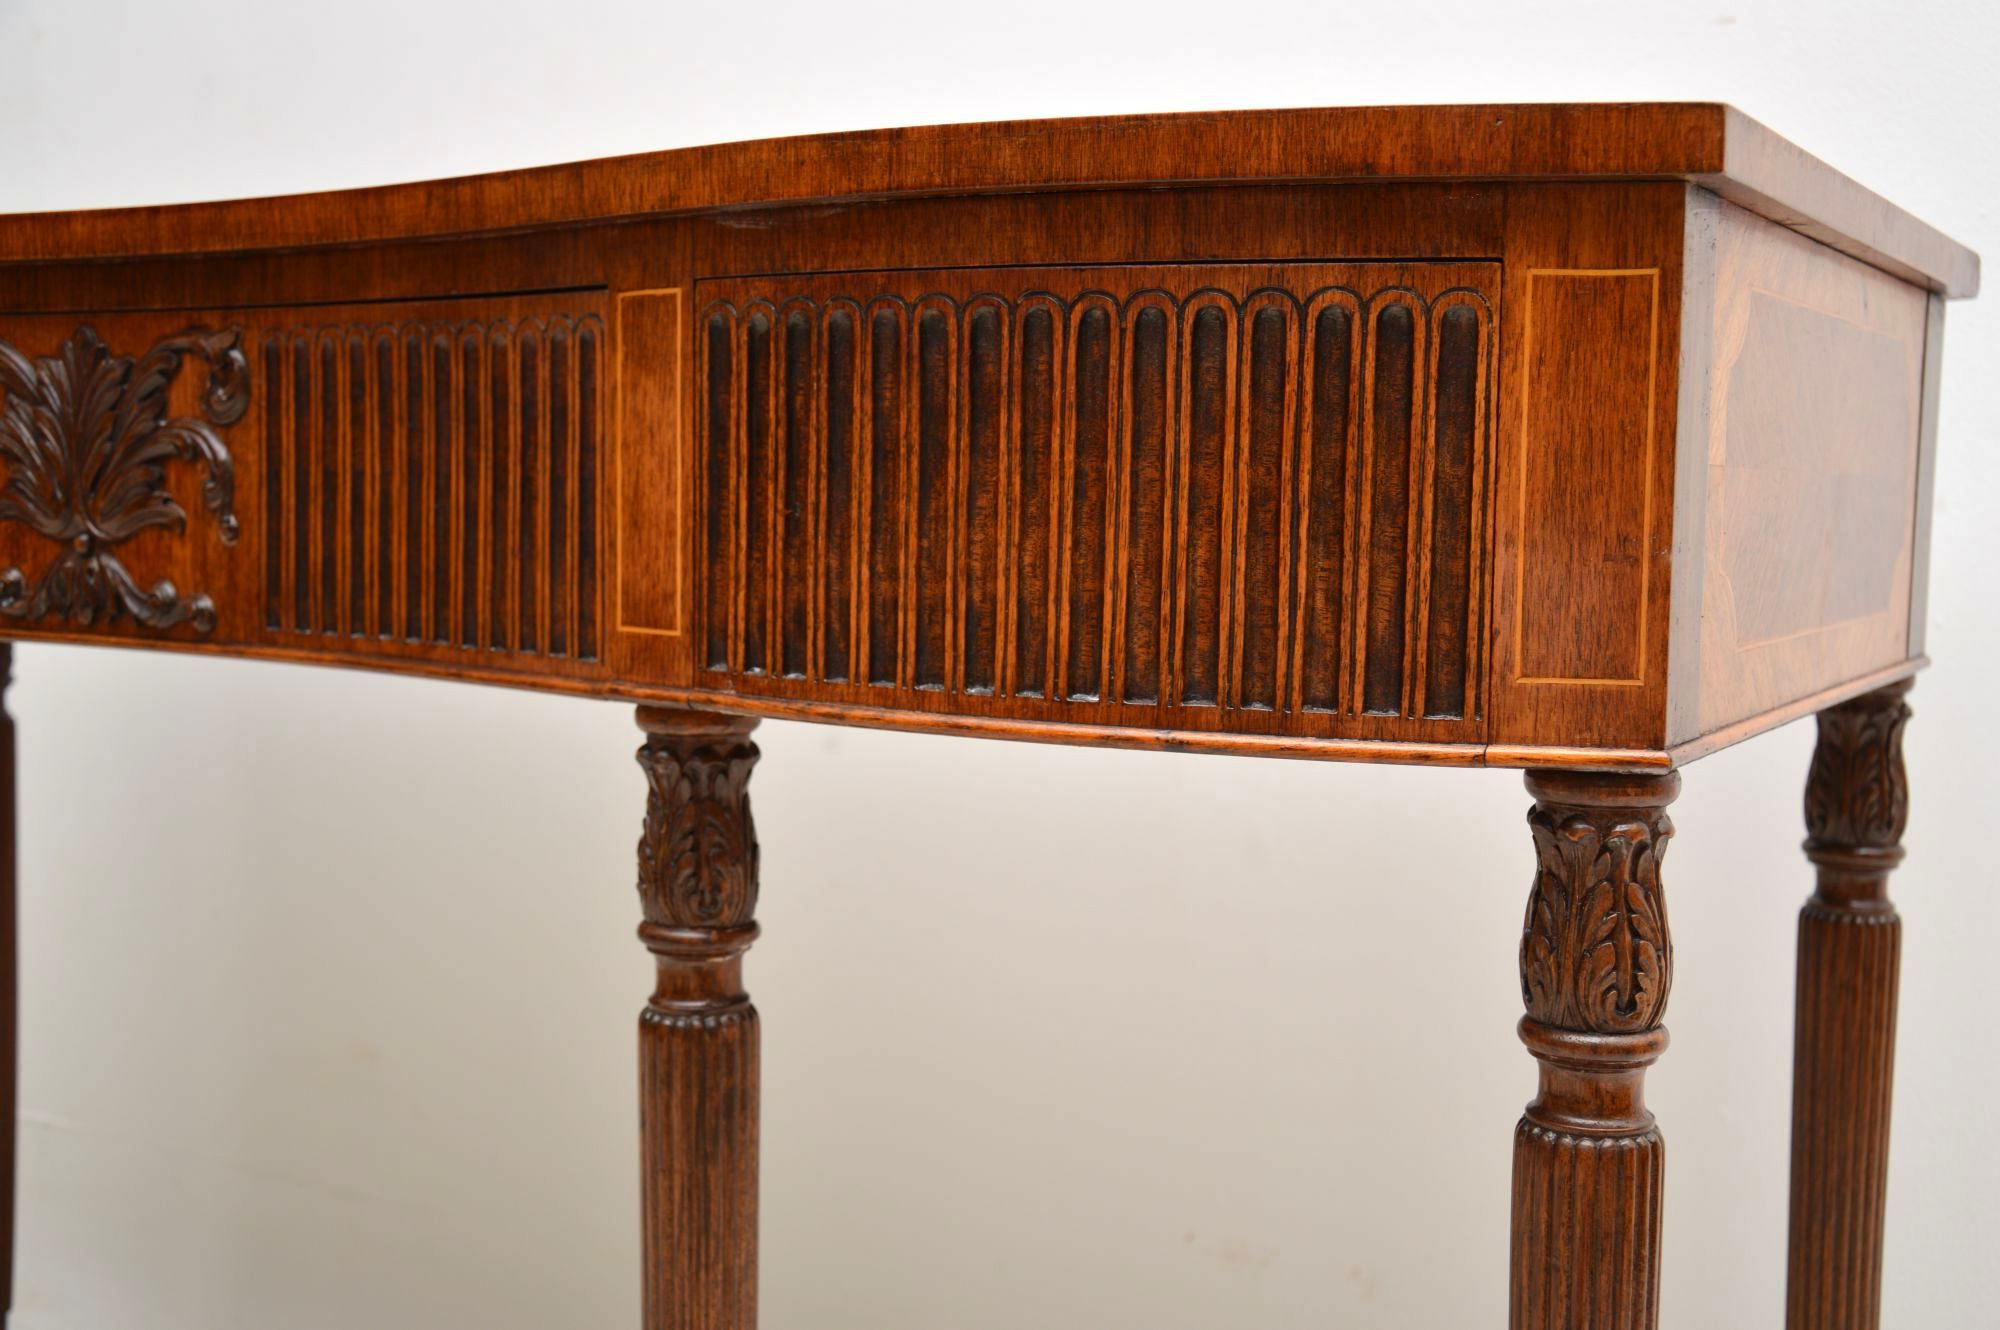 Antique Inlaid Mahogany & Kingwood Server Console Table | Marylebone With Orange Inlay Console Tables (View 13 of 20)